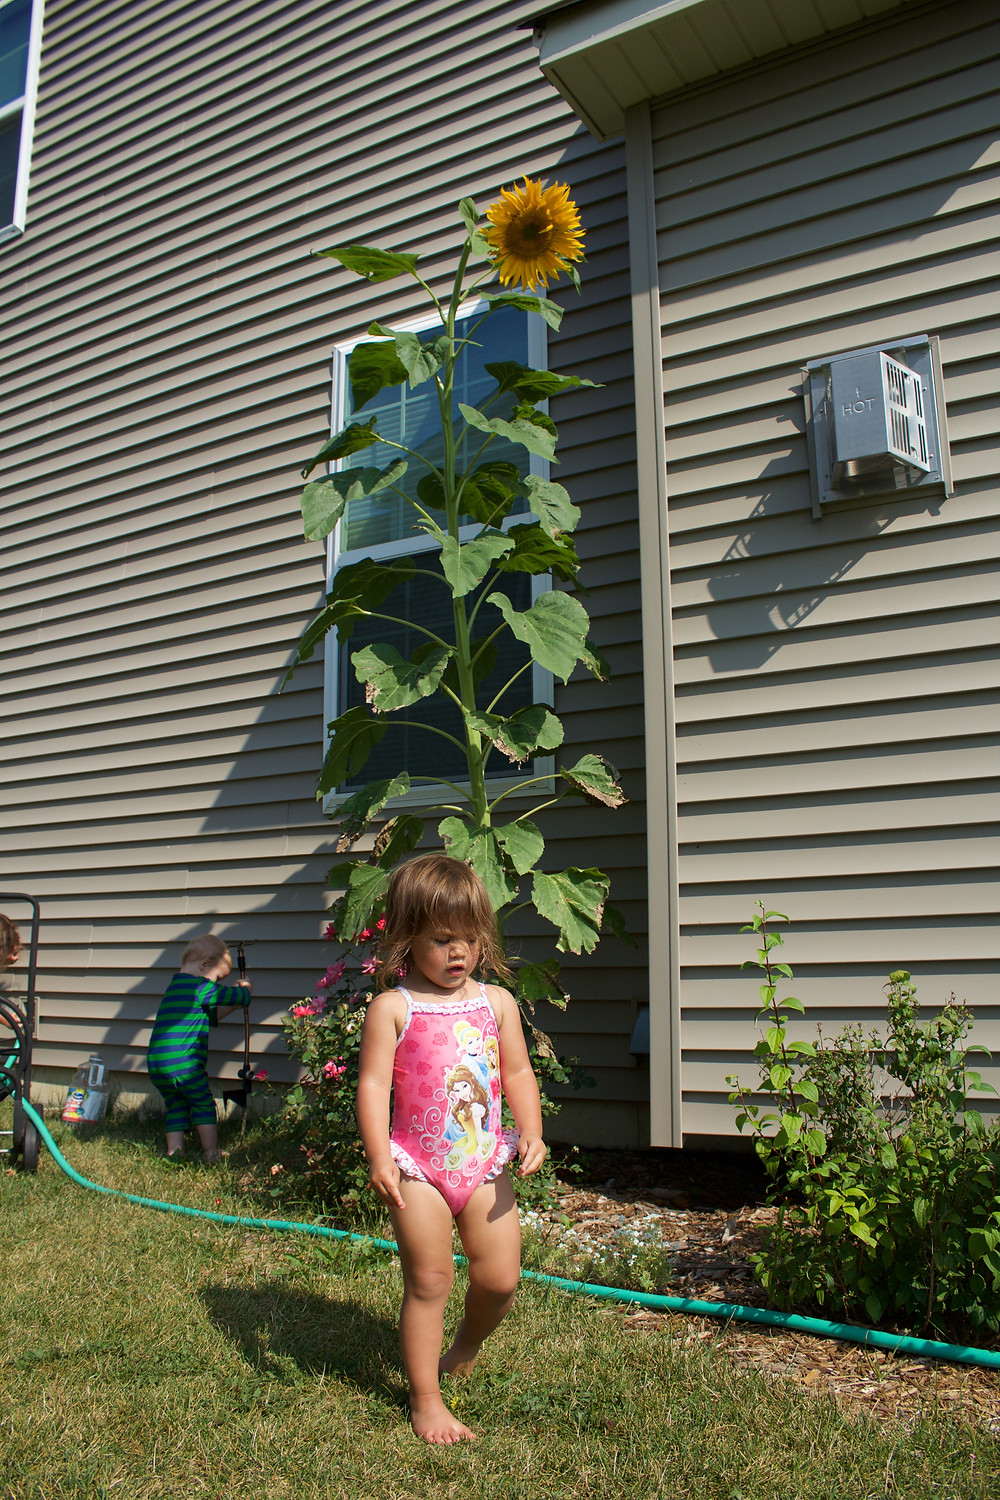 Blue Sky Daycare home daycare children are dwarfed by a giant sunflower